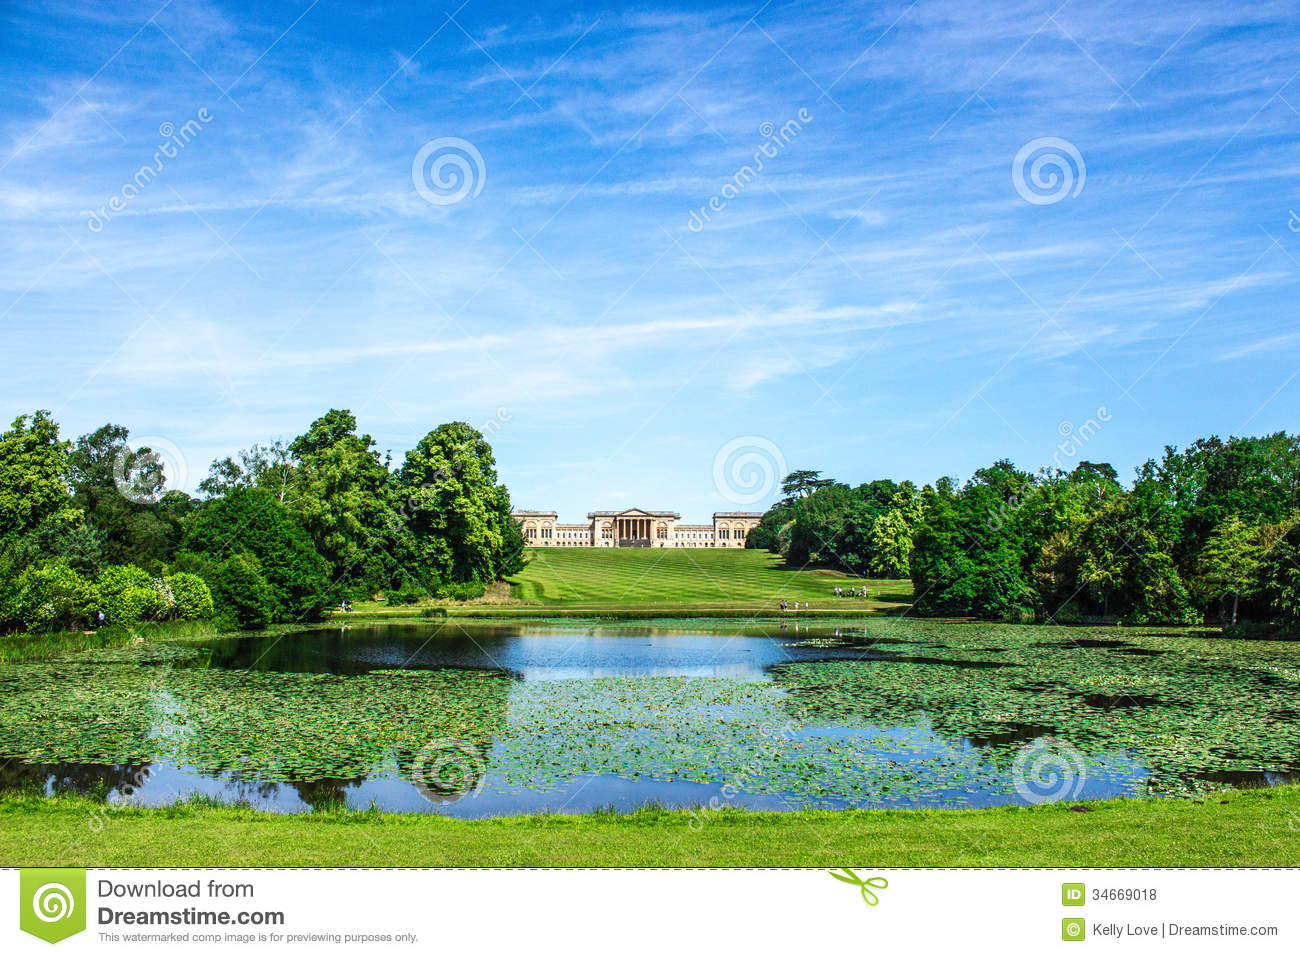 Stowe house and garden royalty free stock photos image for Capability brown garden designs